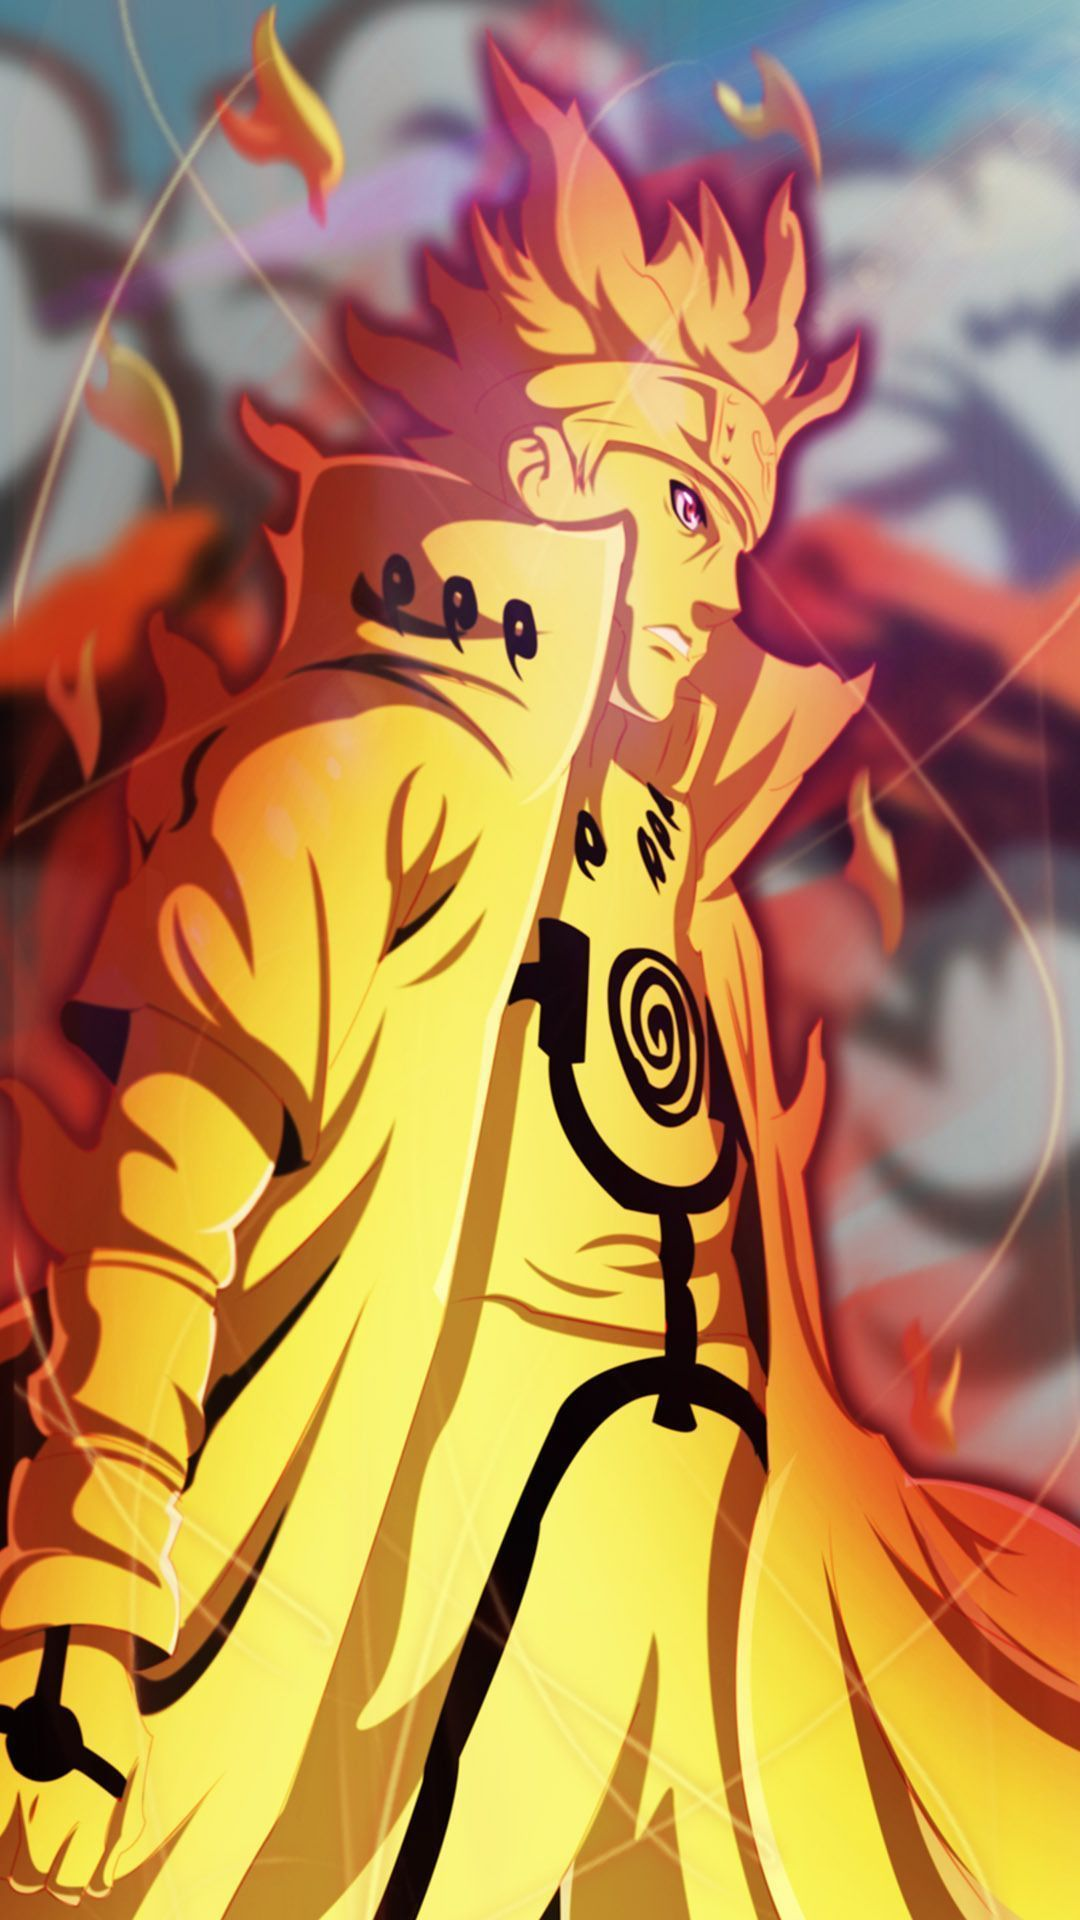 naruto shippuden phone wallpapers | epic car wallpapers